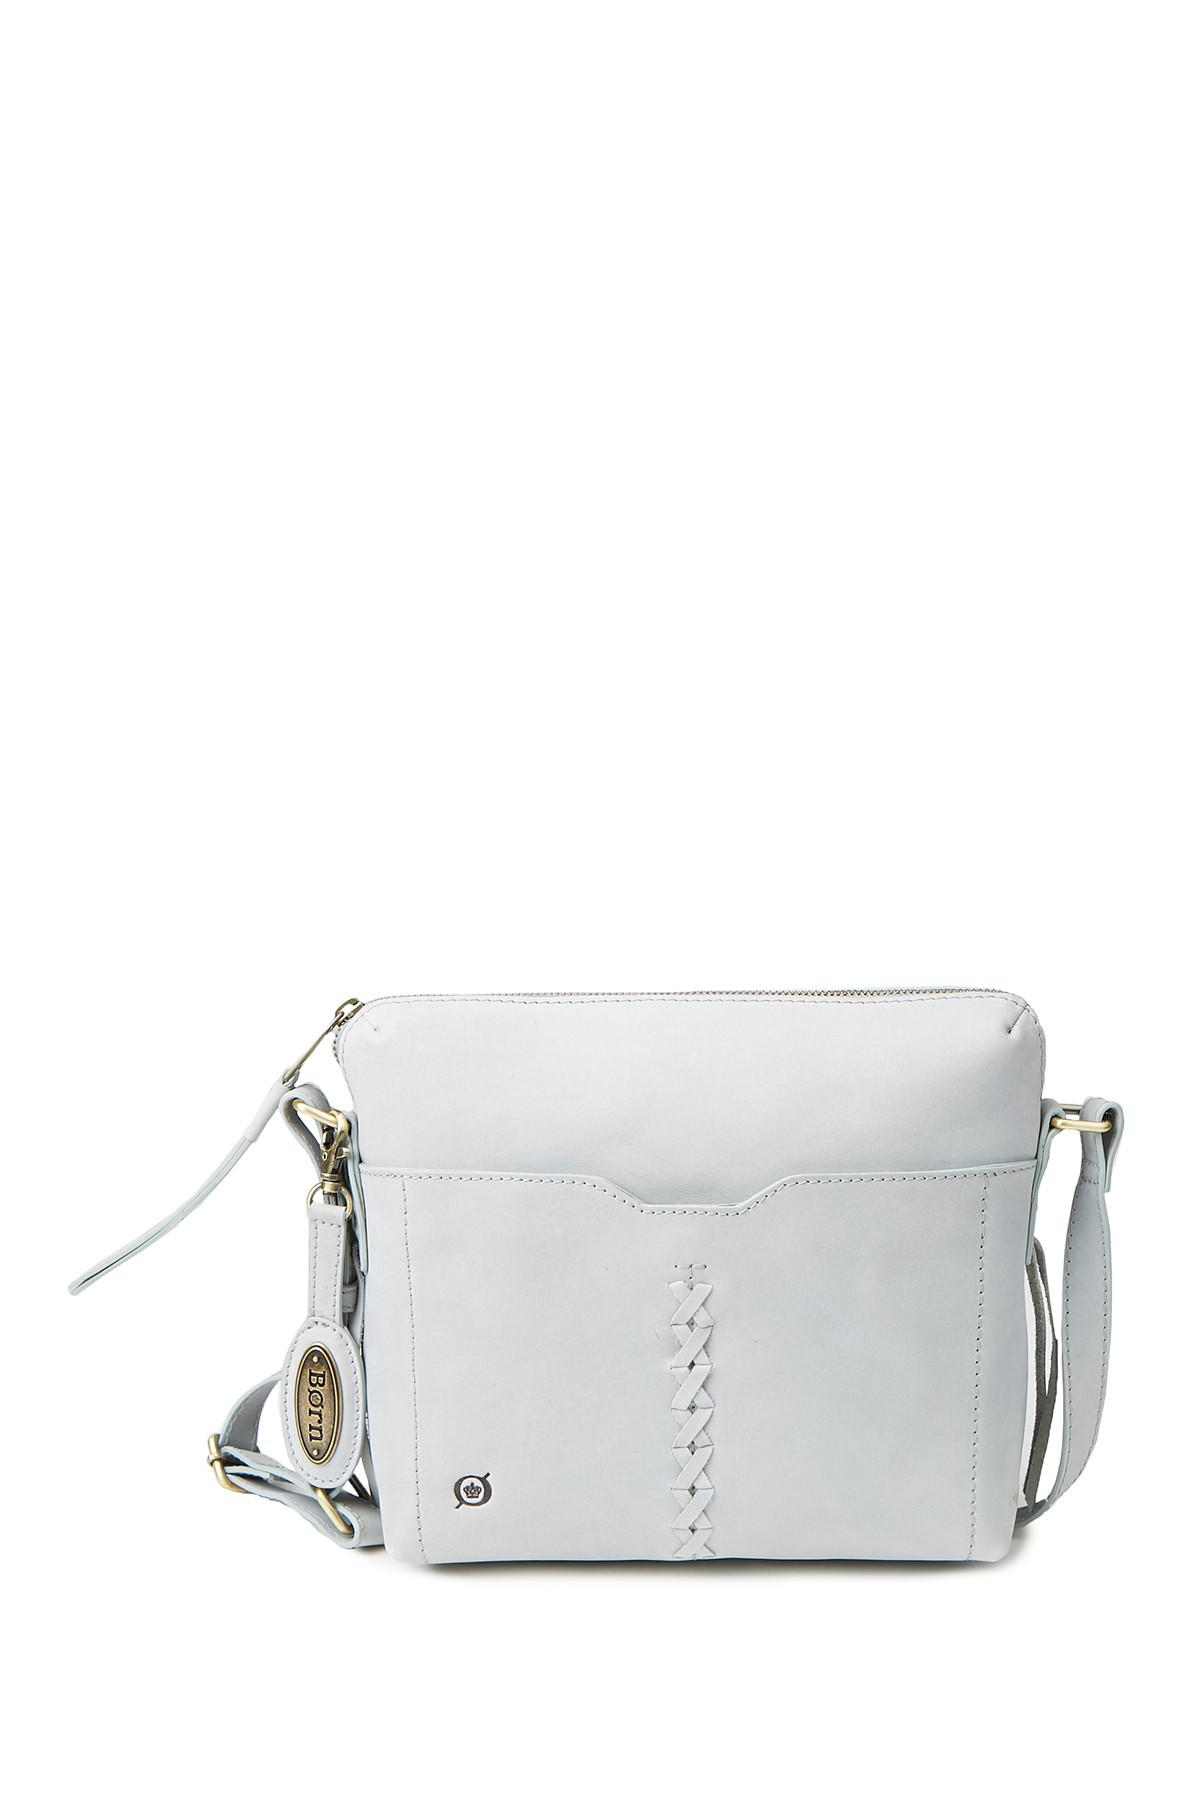 Lyst - Born Wylie Leather Crossbody Bag 08e1c8851f56d